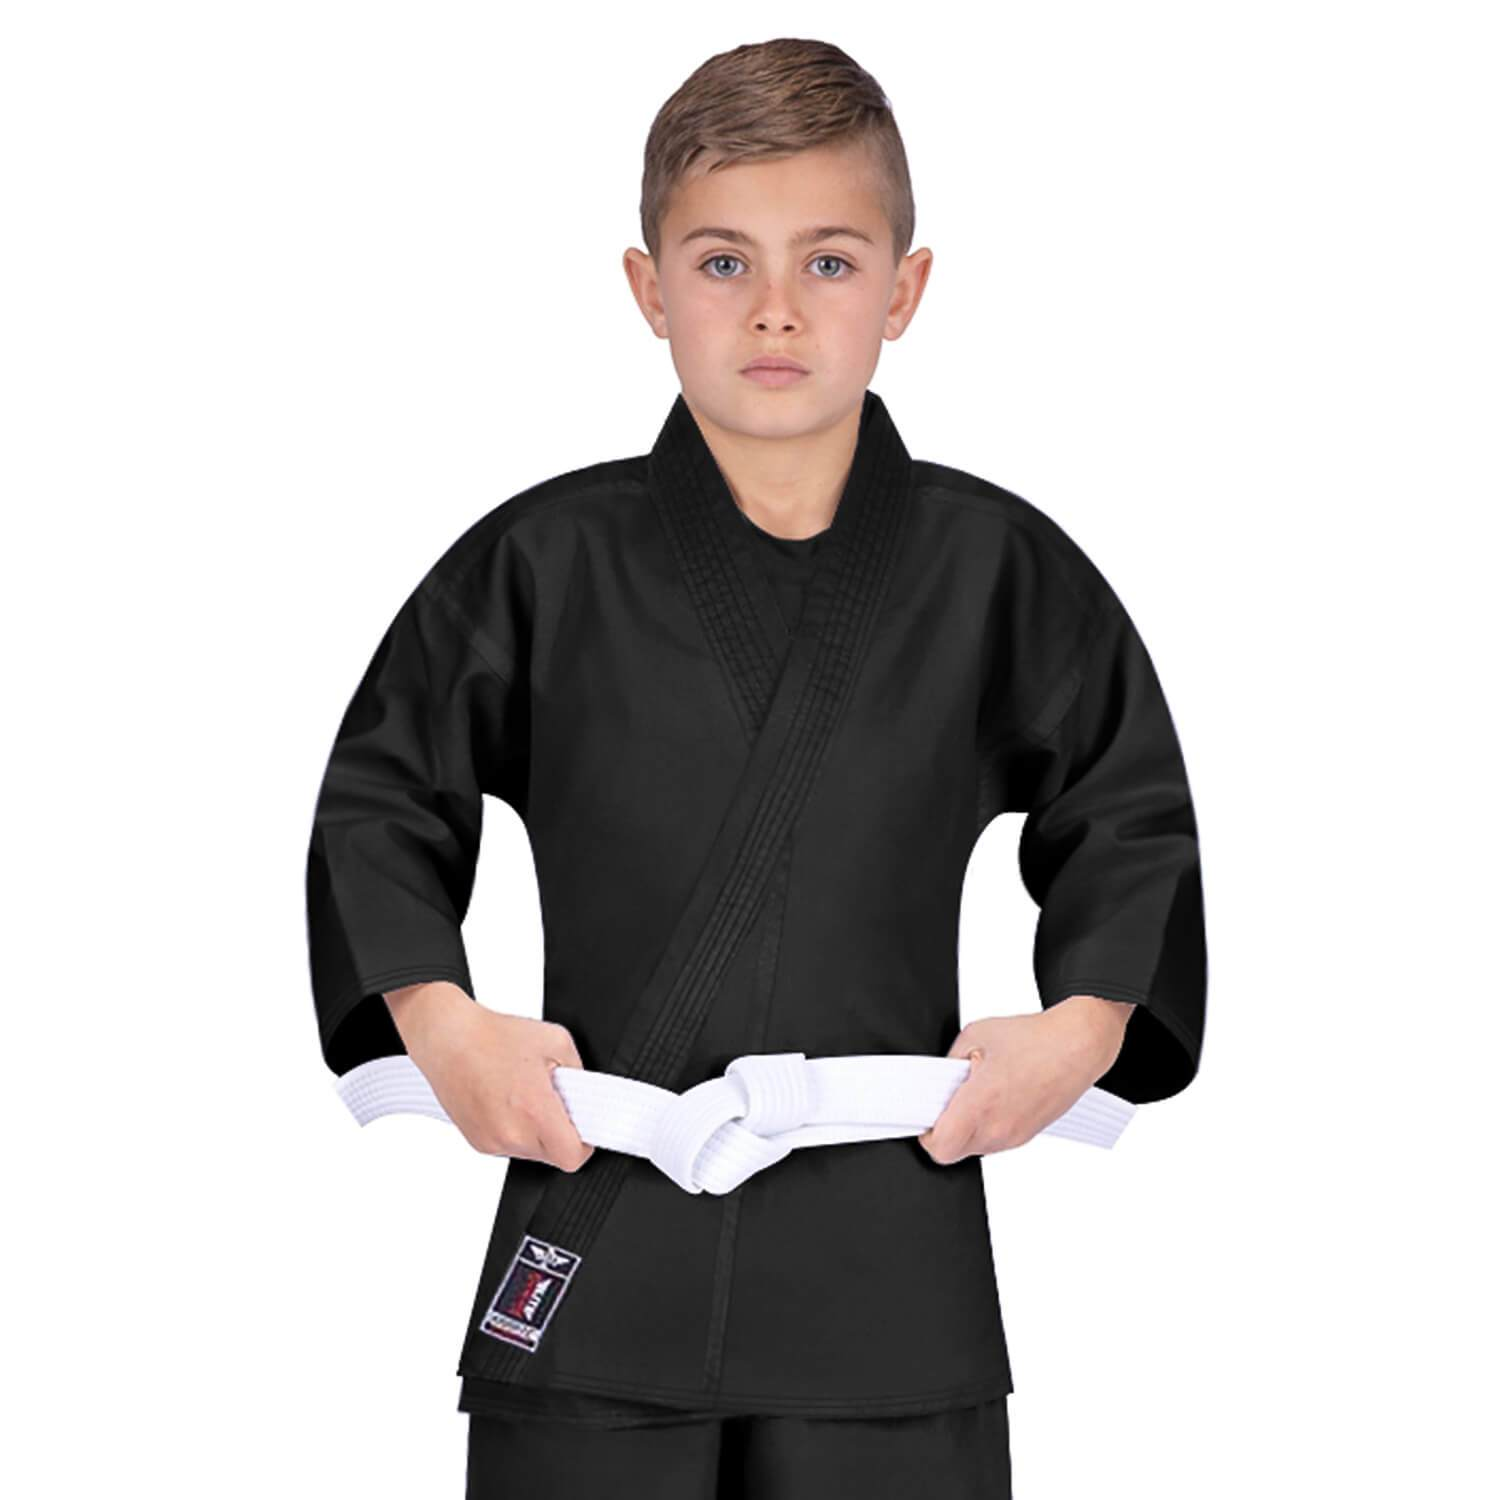 Elite Sports Ultra Light Preshrunk Black Kids Karate Gi